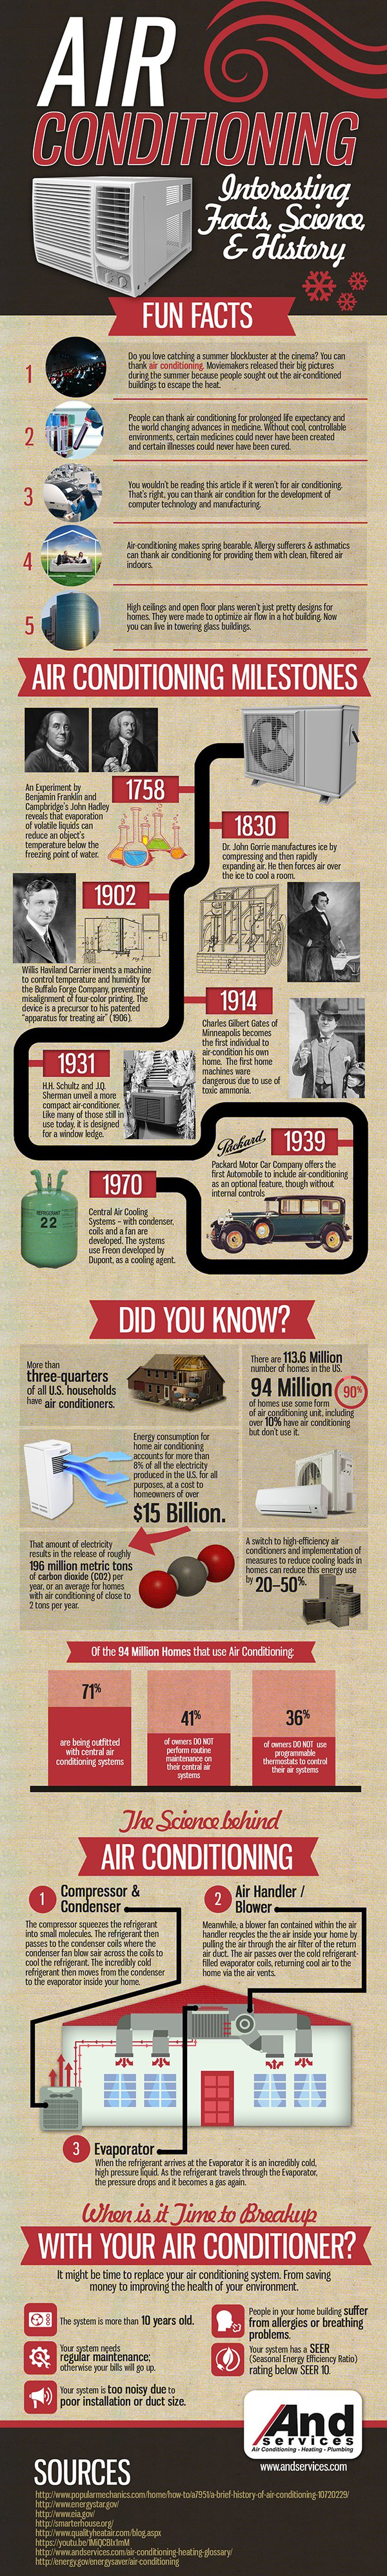 Air Conditioning Fun Facts, Science & History!